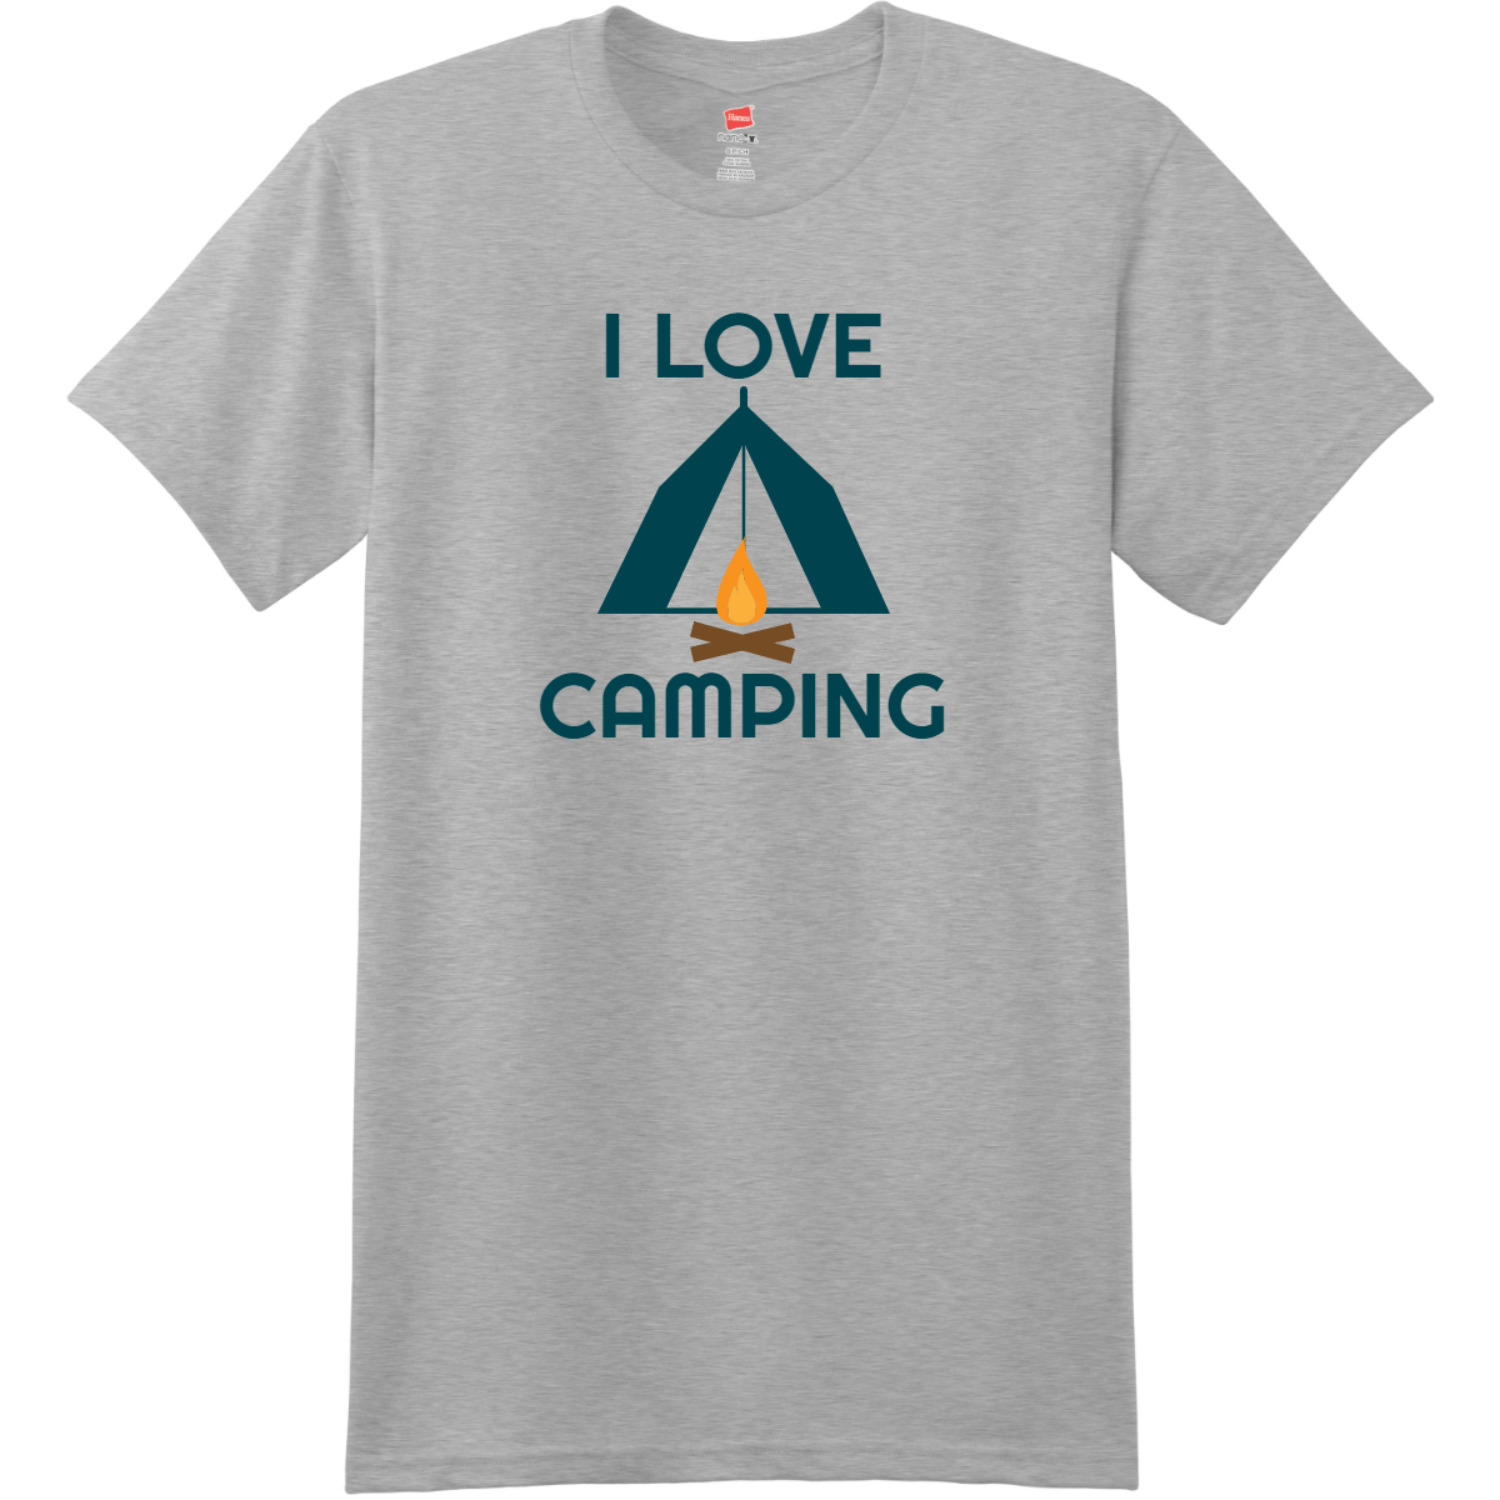 I Love Camping T Shirt Light Steel Hanes Nano 4980 Ringspun Cotton T Shirt